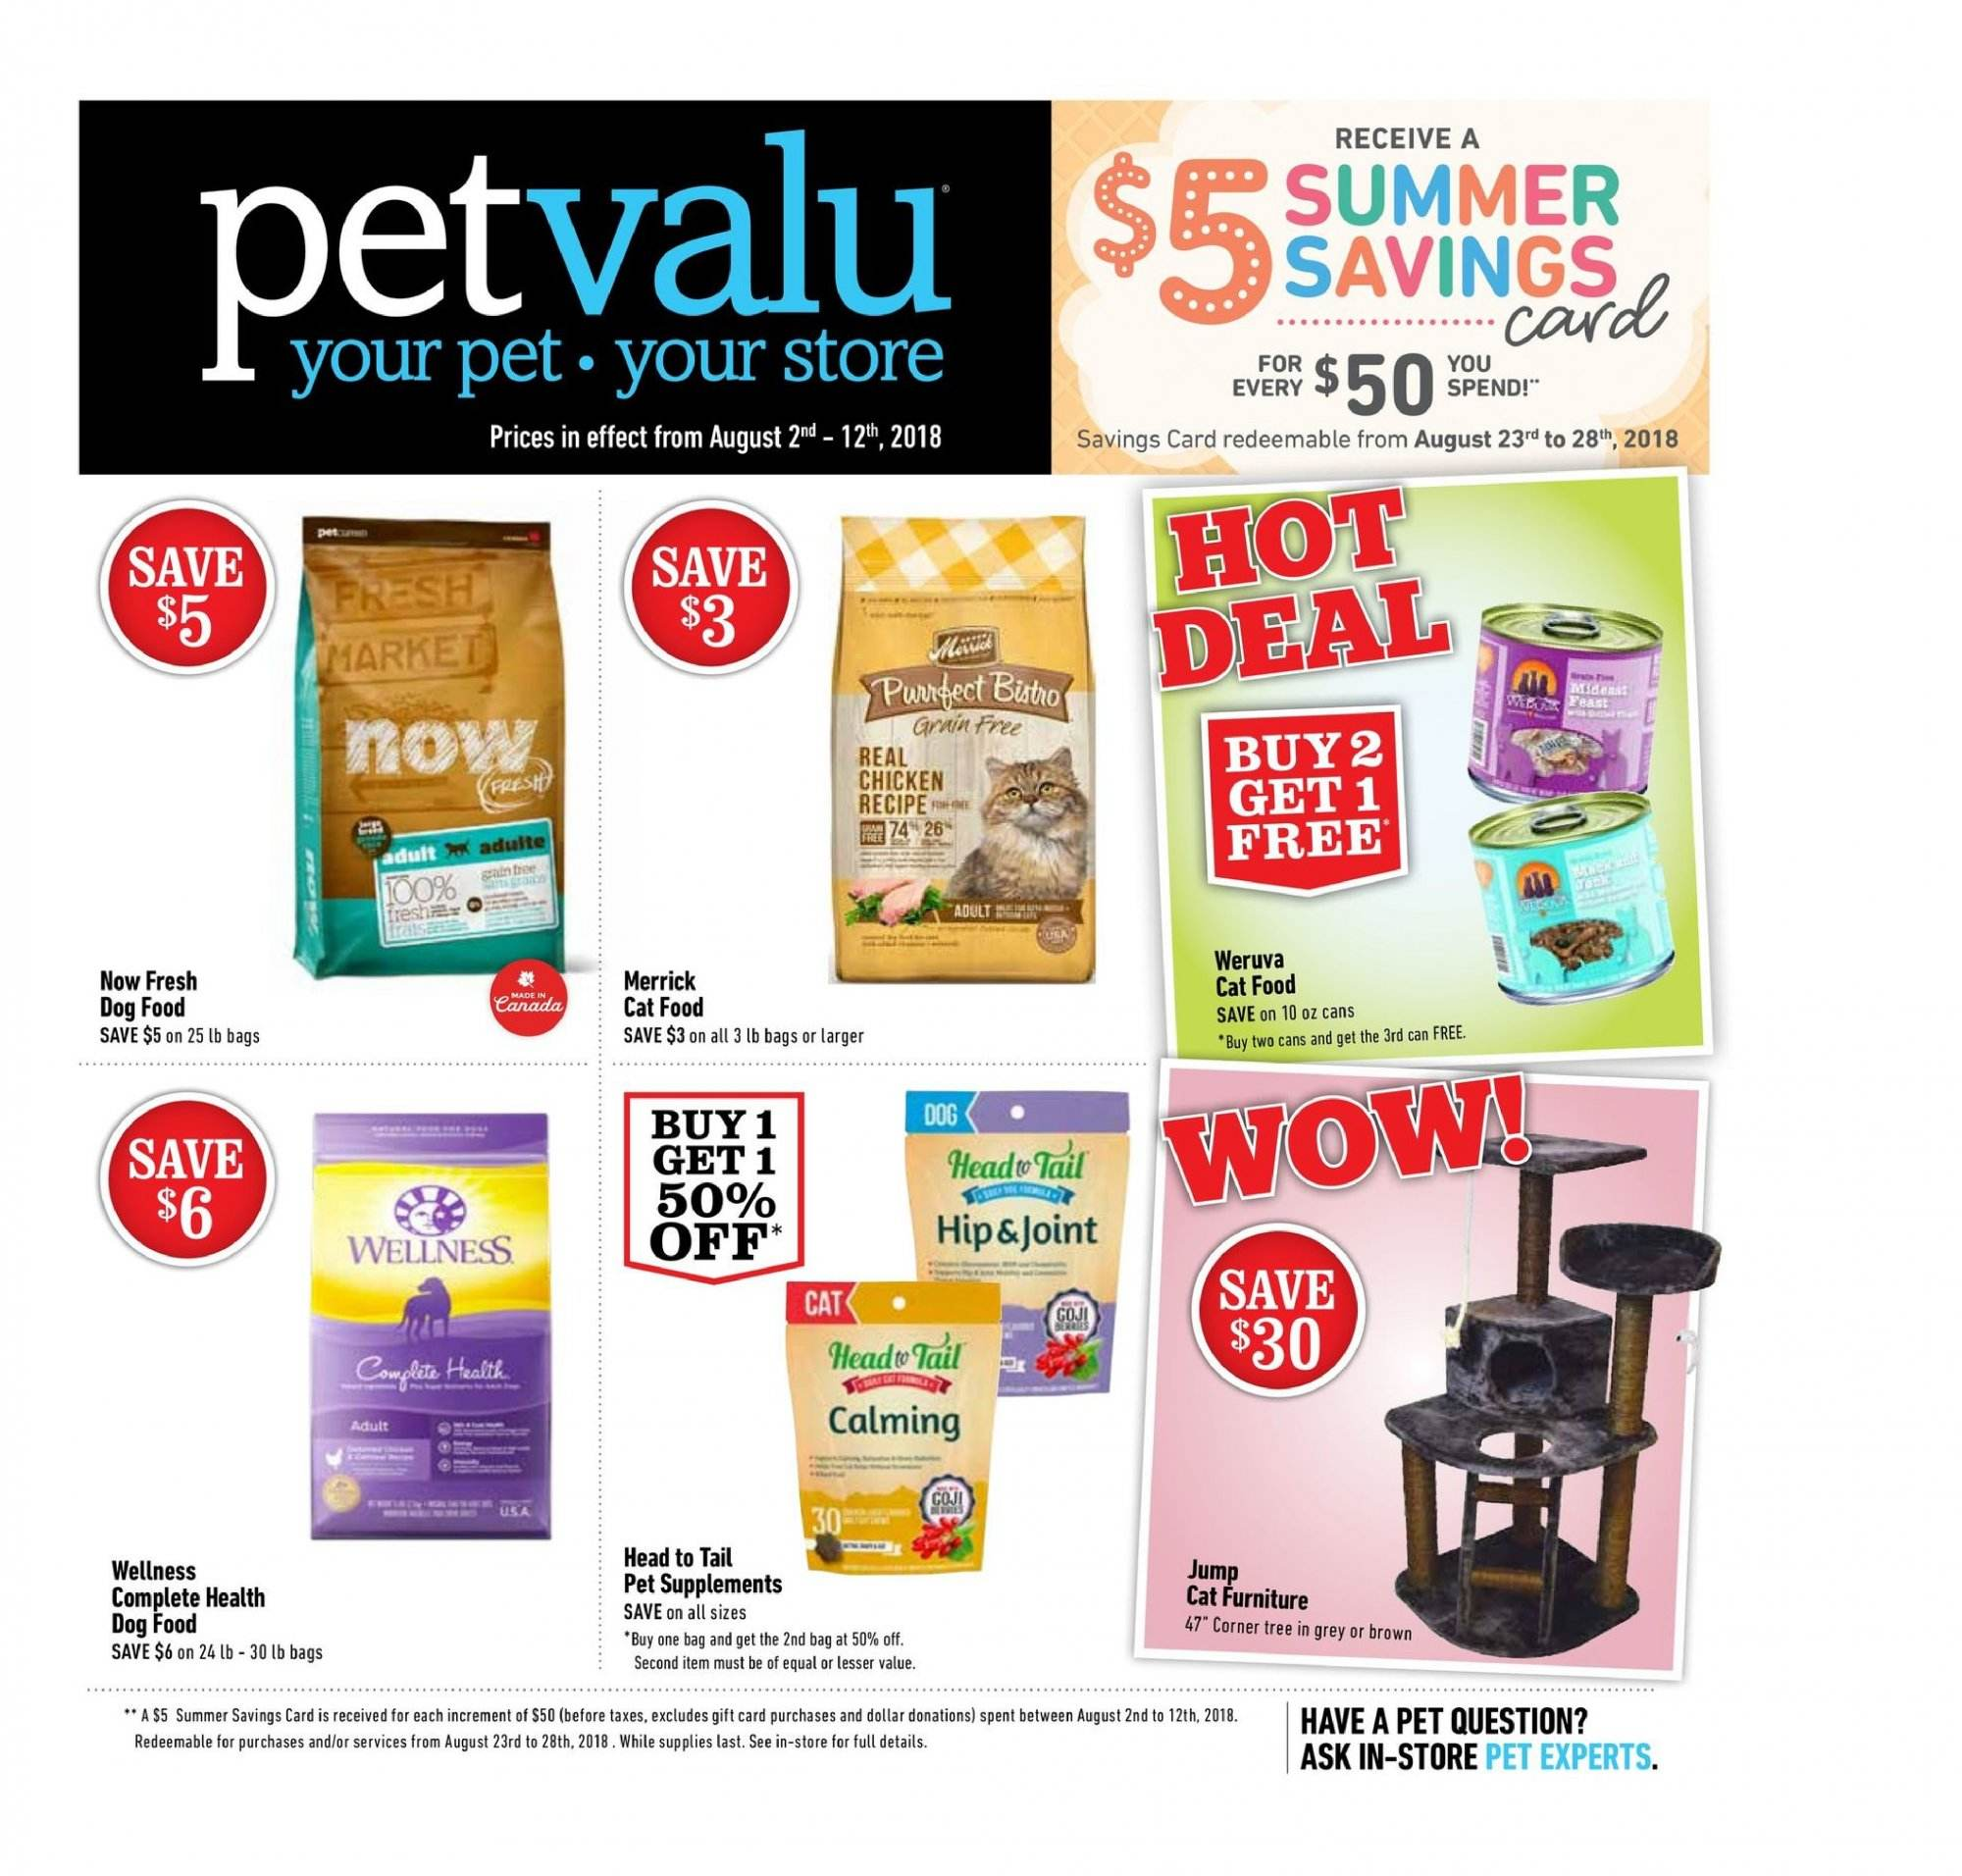 Pet Valu Flyer - August 02, 2018 - August 12, 2018 - Sales products - animal food, bag, cat food, dog food, furniture, merrick, tree, pet, chicken, gift card, car. Page 1.